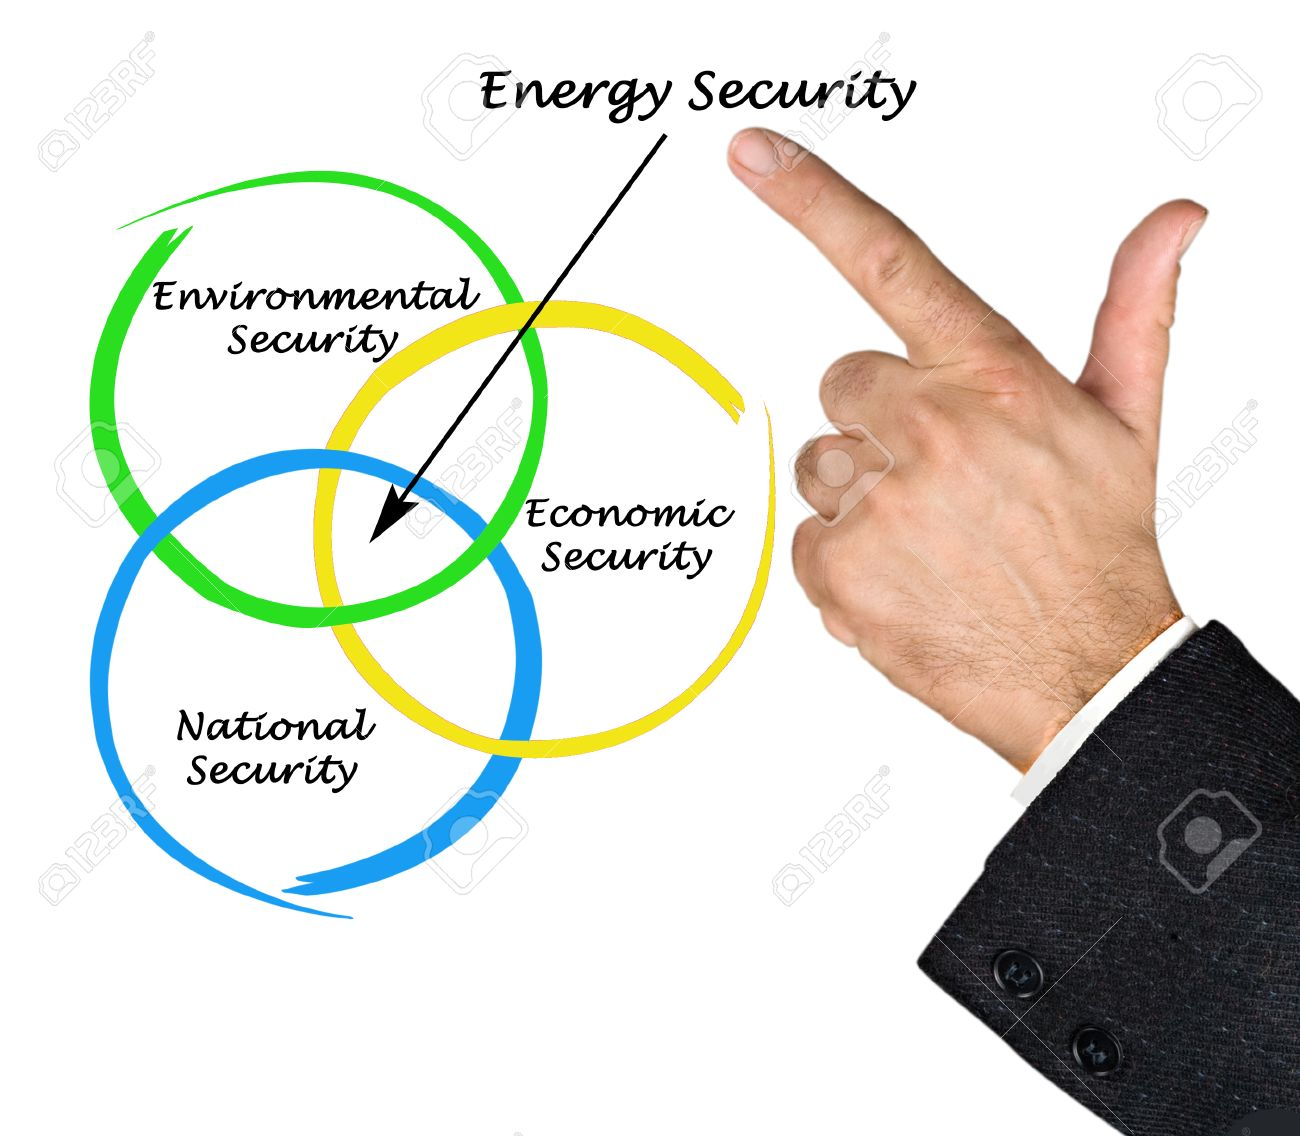 Diagram Of Energy Security Stock Photo, Picture And Royalty Free ...